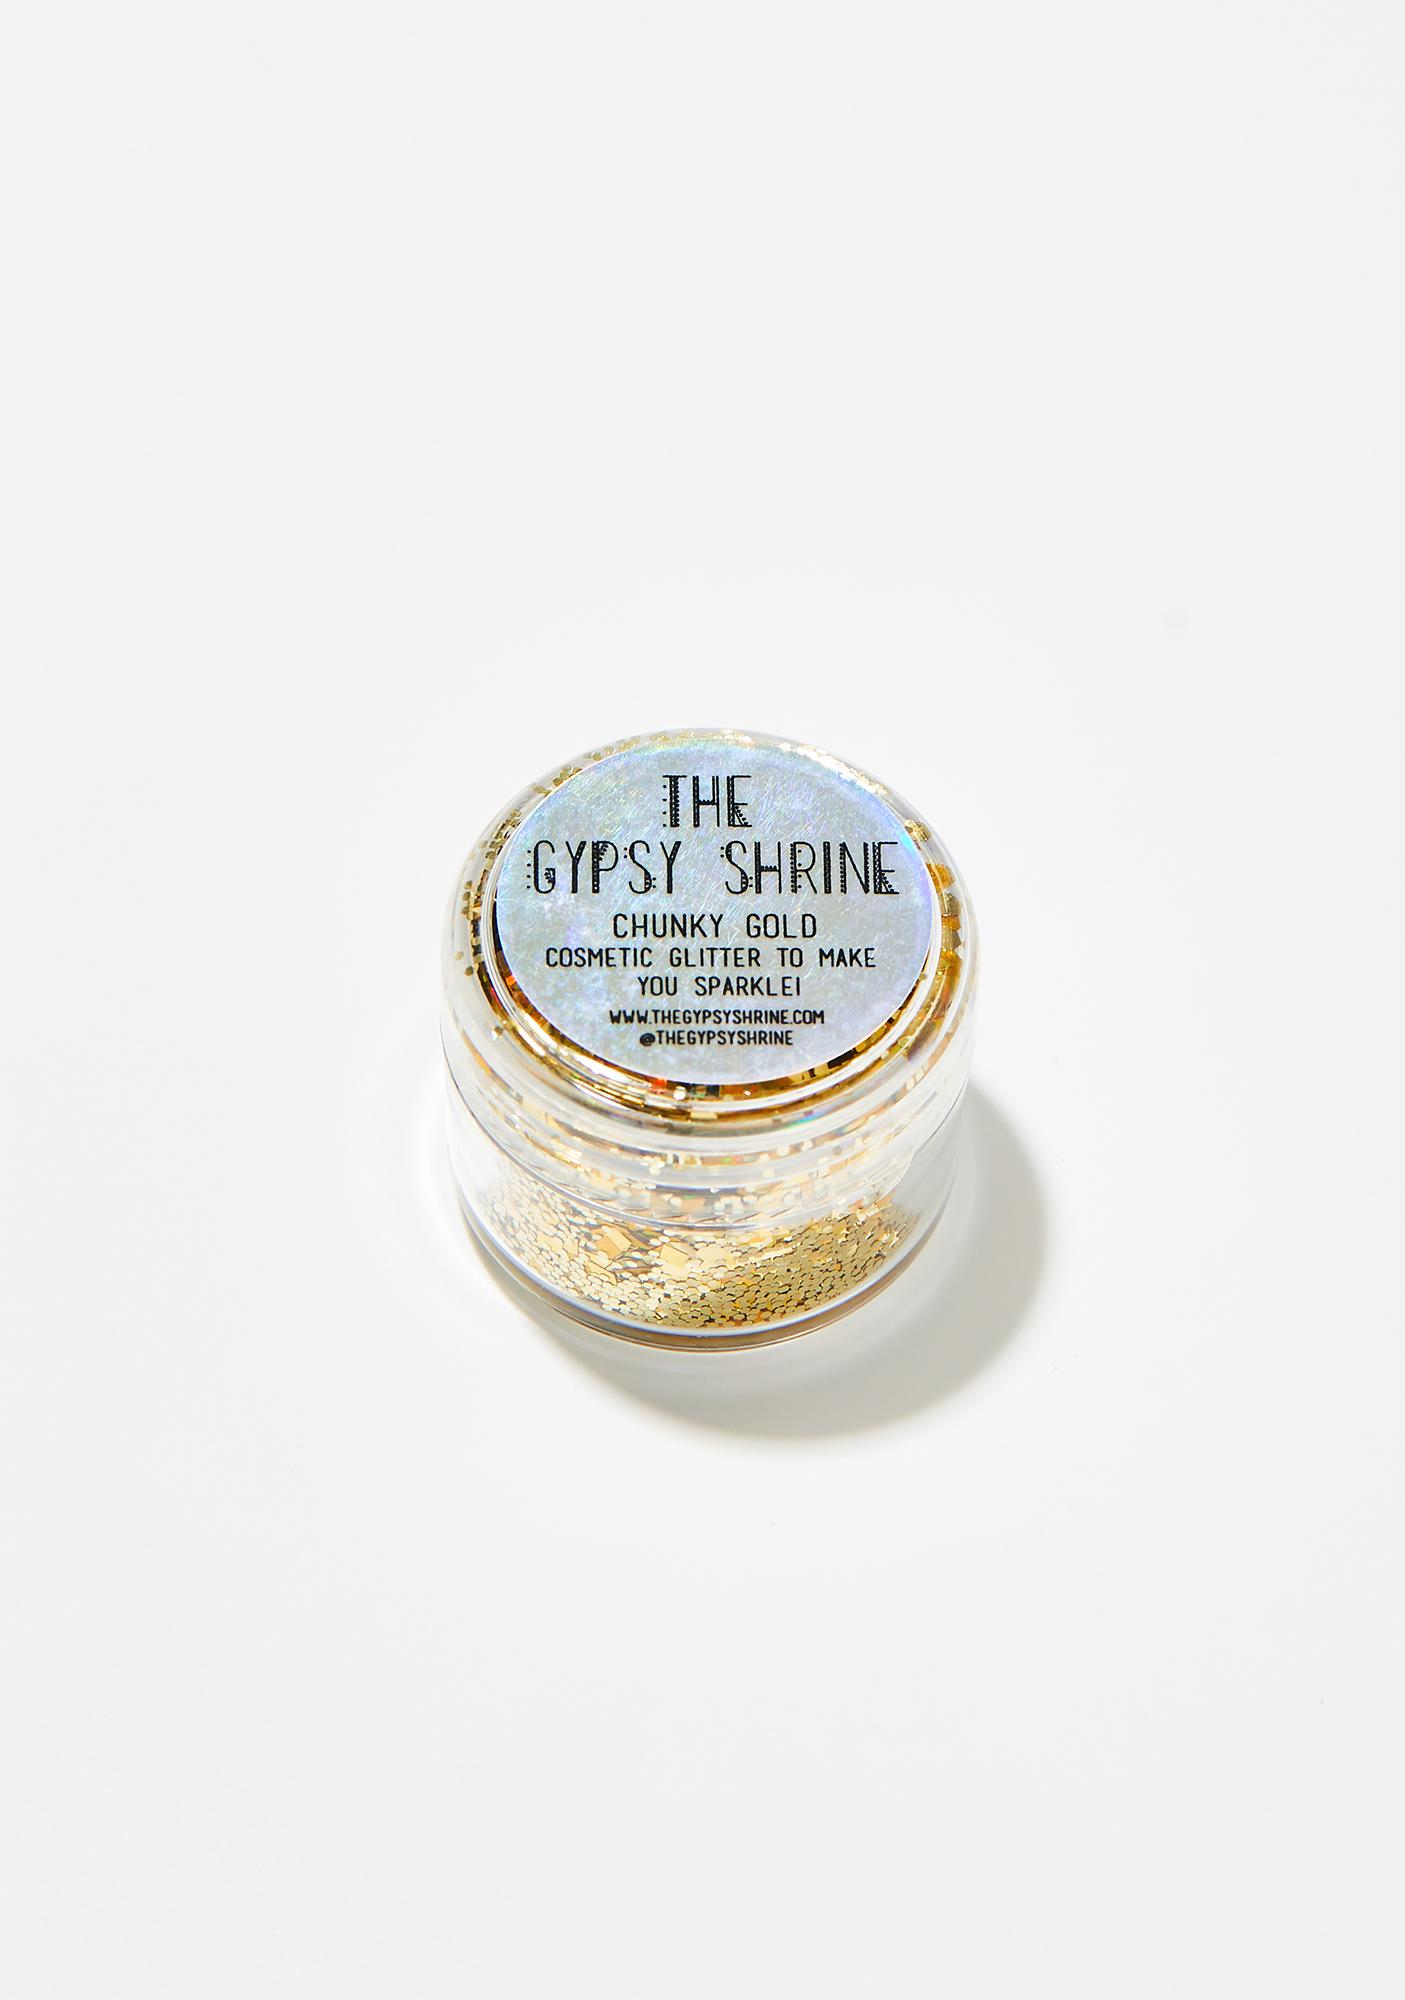 The Gypsy Shrine Chunky Gold Glitter